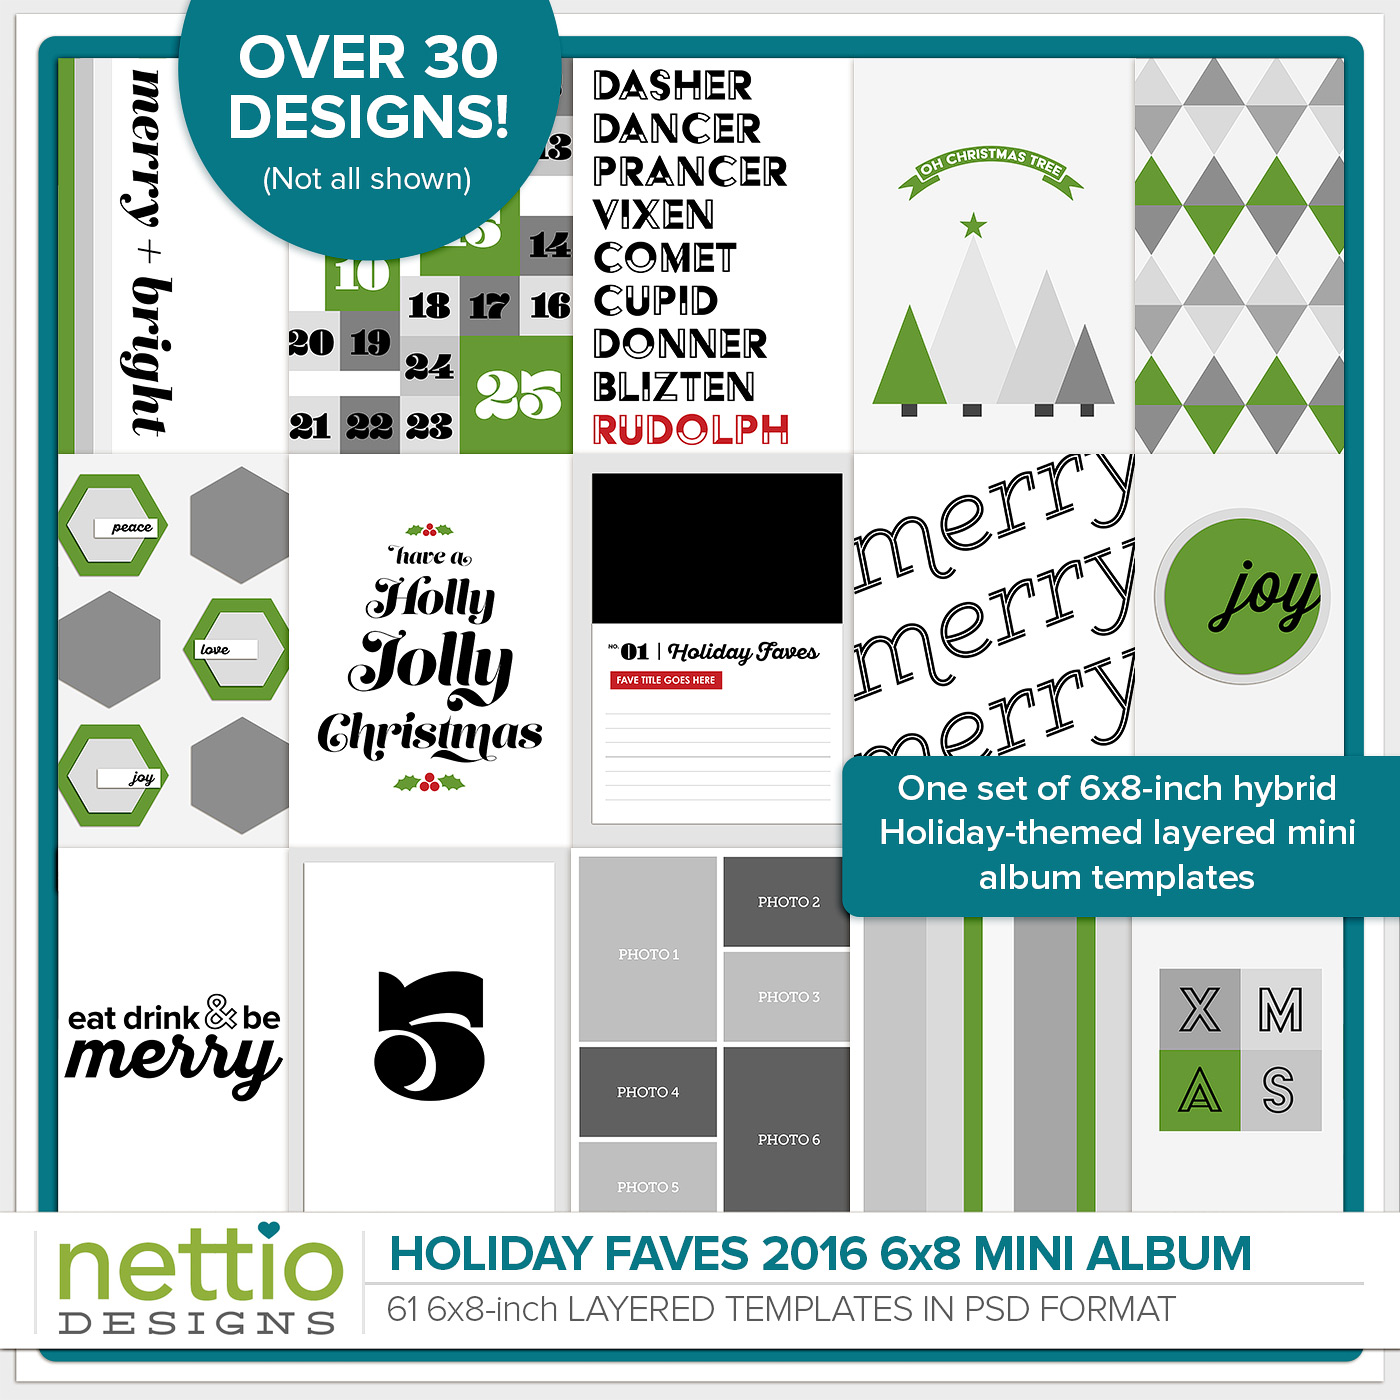 nettiodesigns_holidayfaves16_preview-new